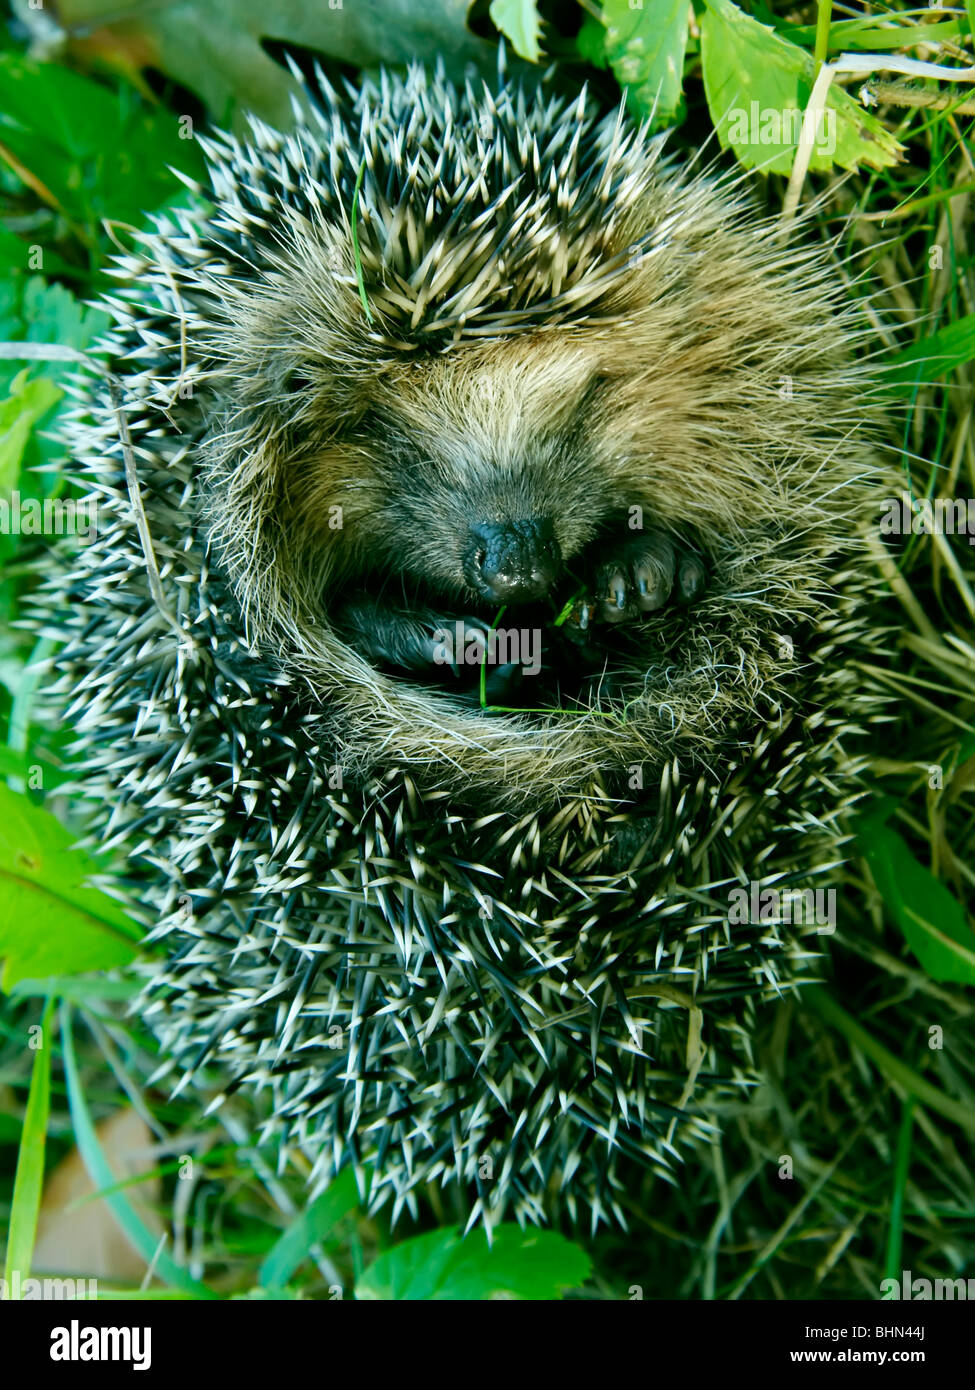 West European Hedgehog (Erinaceus europaeus) - Stock Image